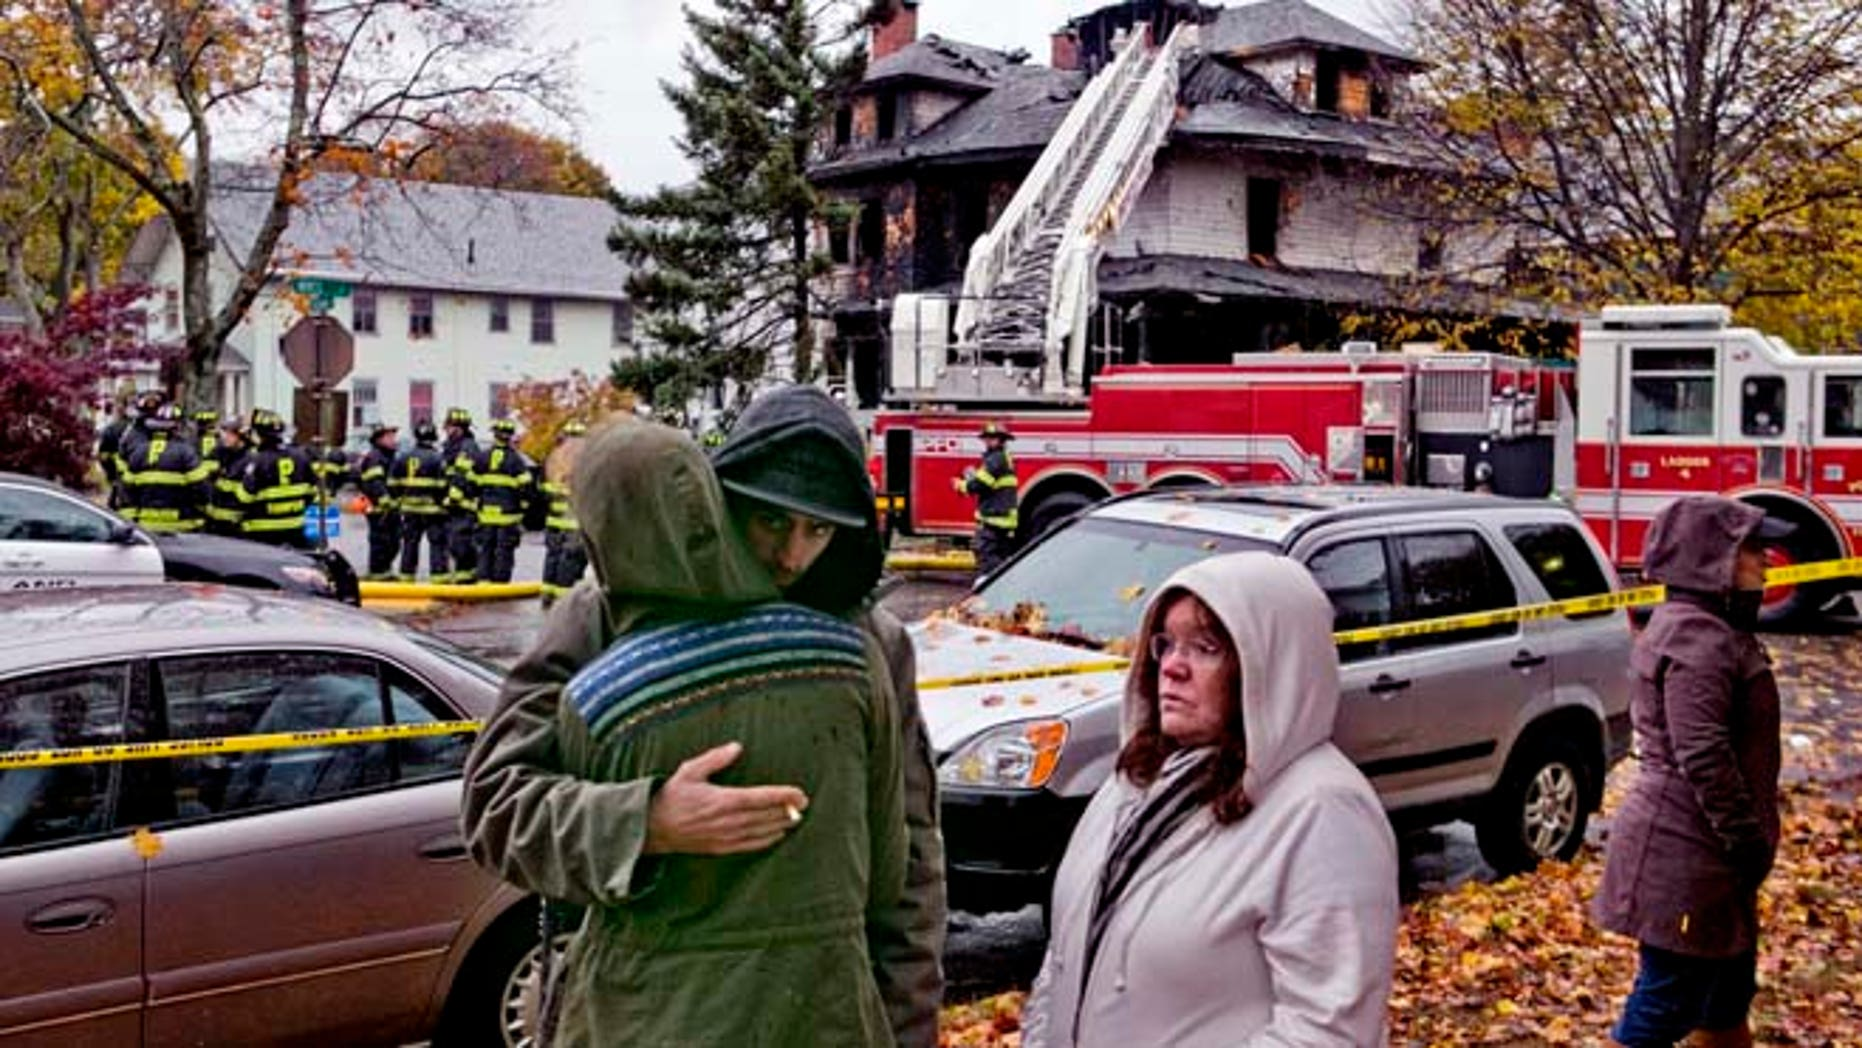 Nov. 1, 2014: Friends of a victim of a fatal apartment building fire console each other in Portland, Maine. (AP)